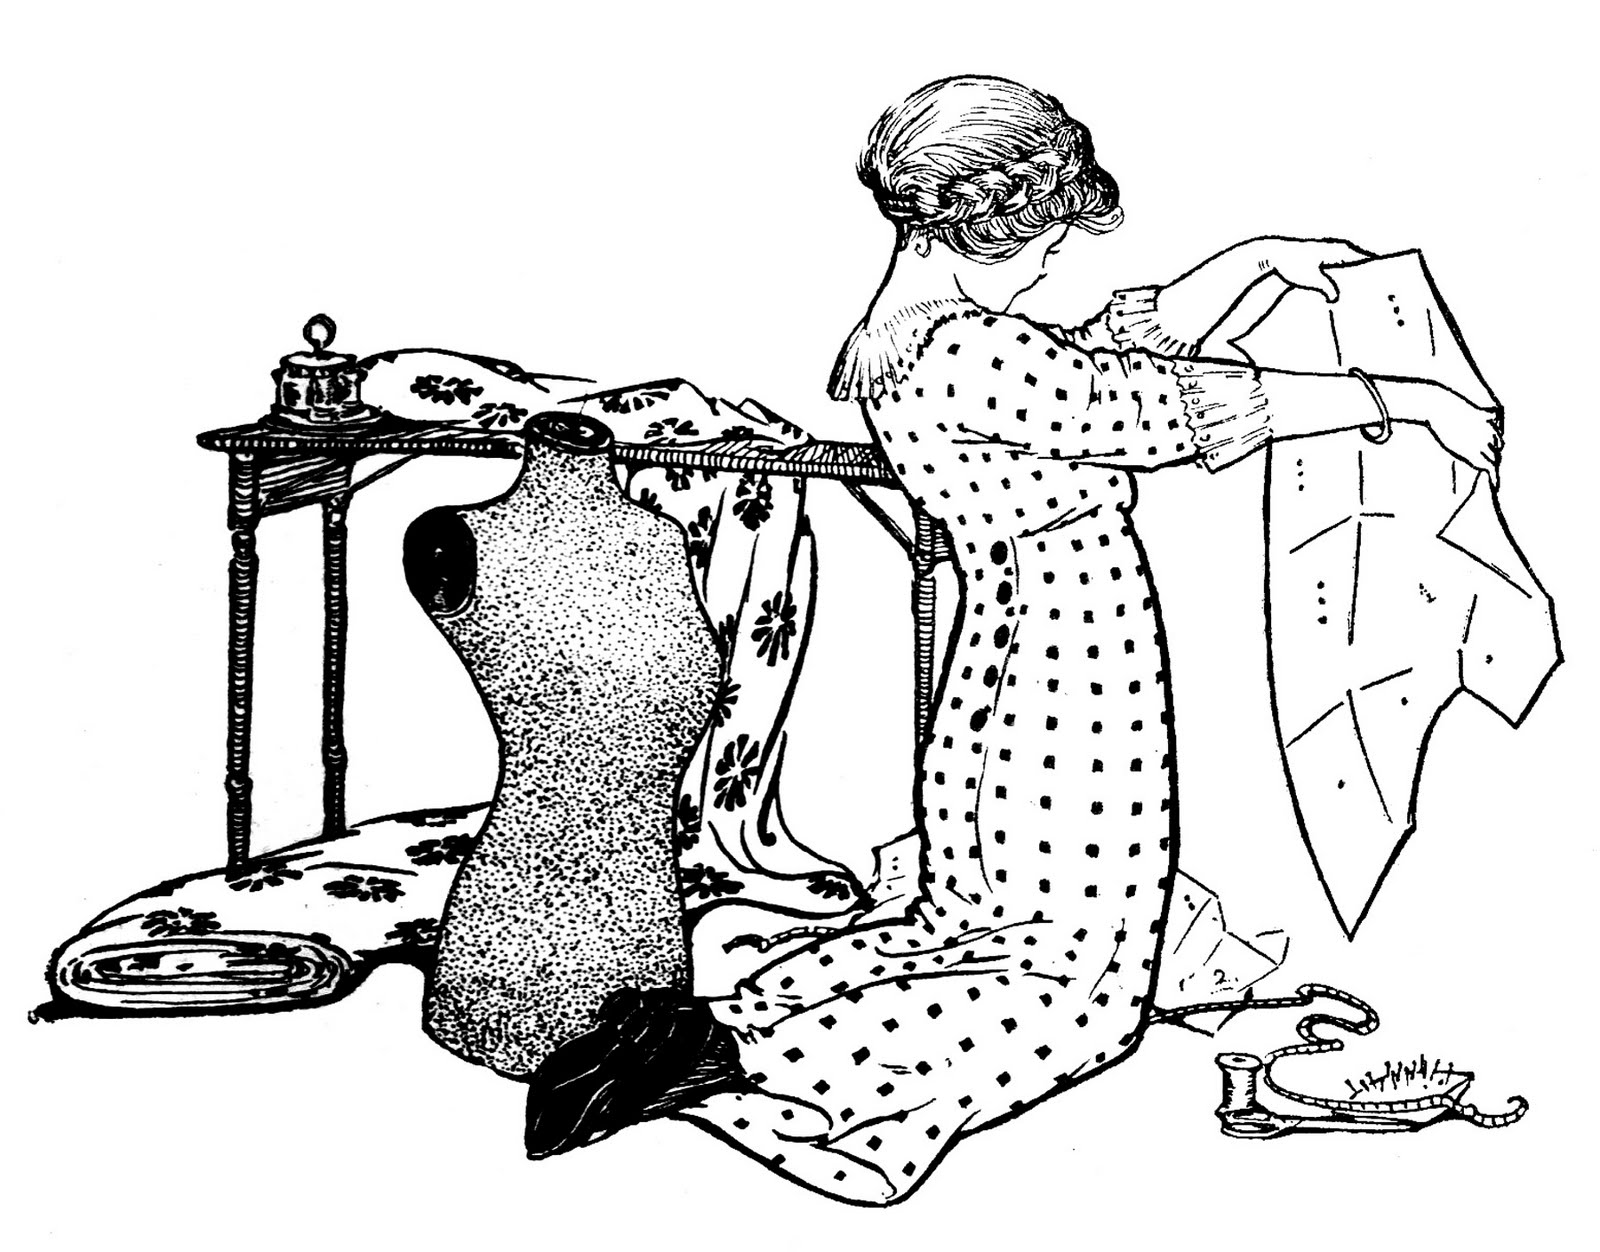 Sewing pattern clipart stock Vintage Sewing Clip Art - Girl with Pattern and Dress Form ... stock